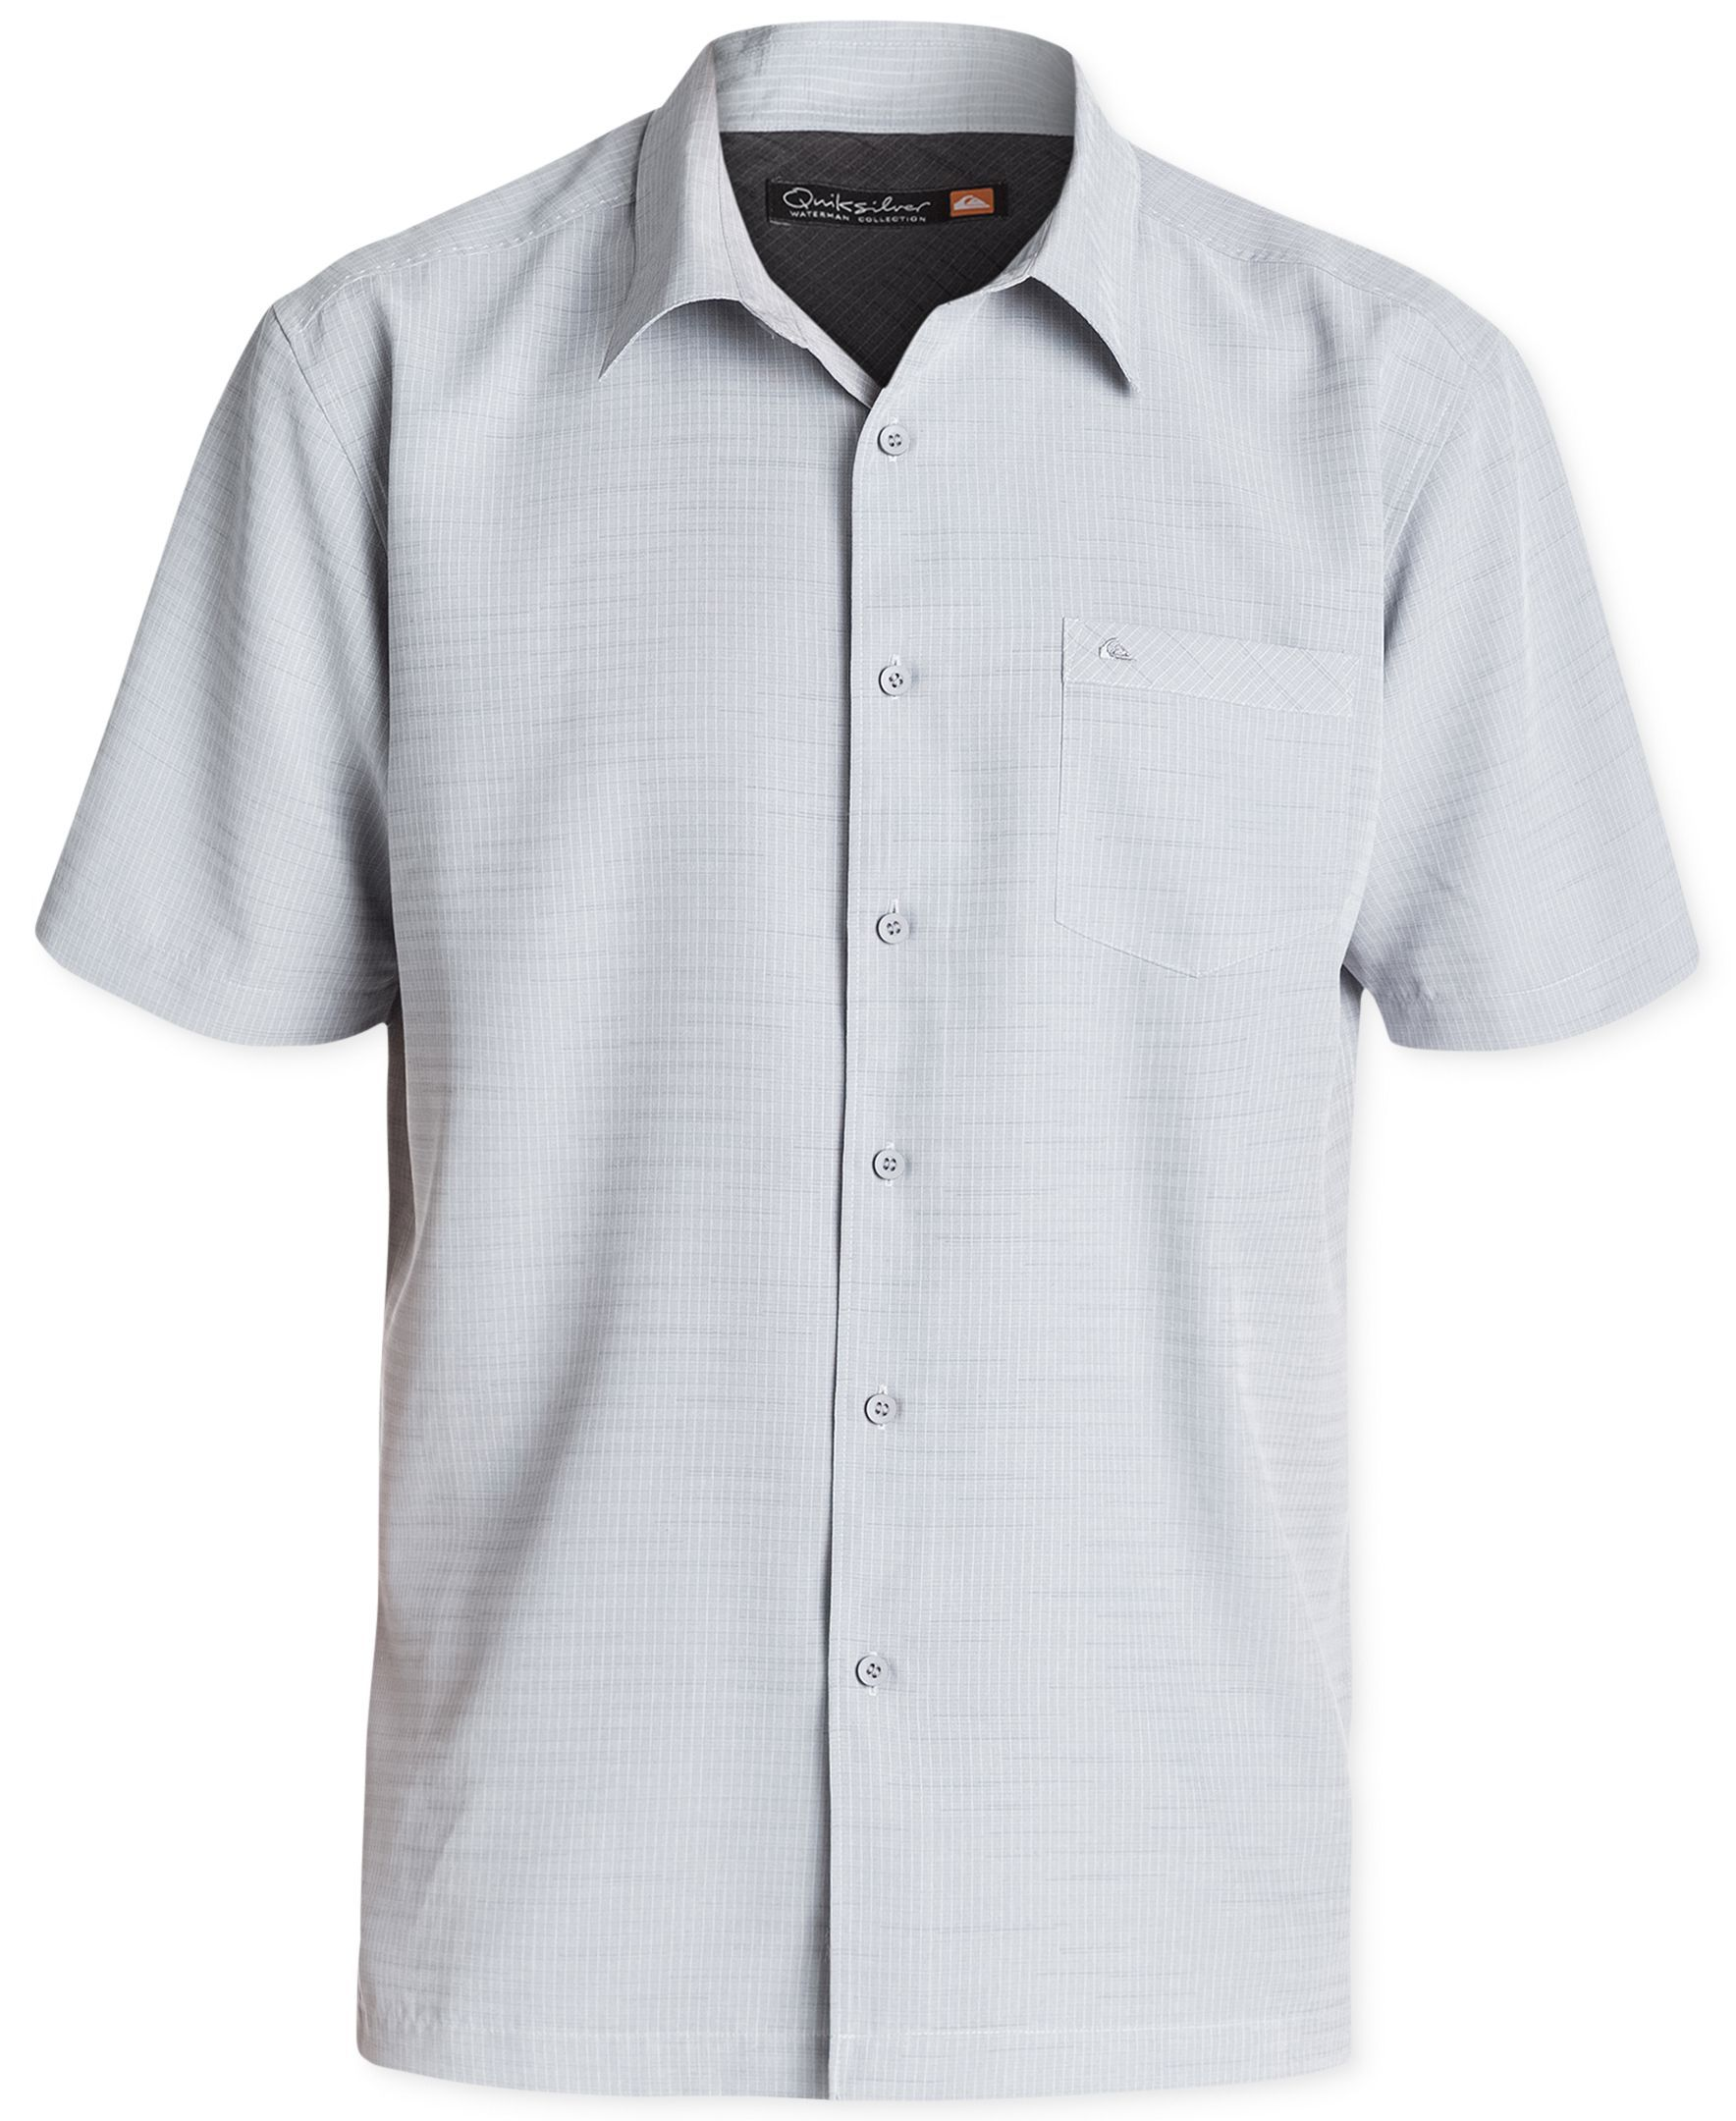 75dd9fb21 Quiksilver Waterman Collection Centinela 3 Shirt | Products